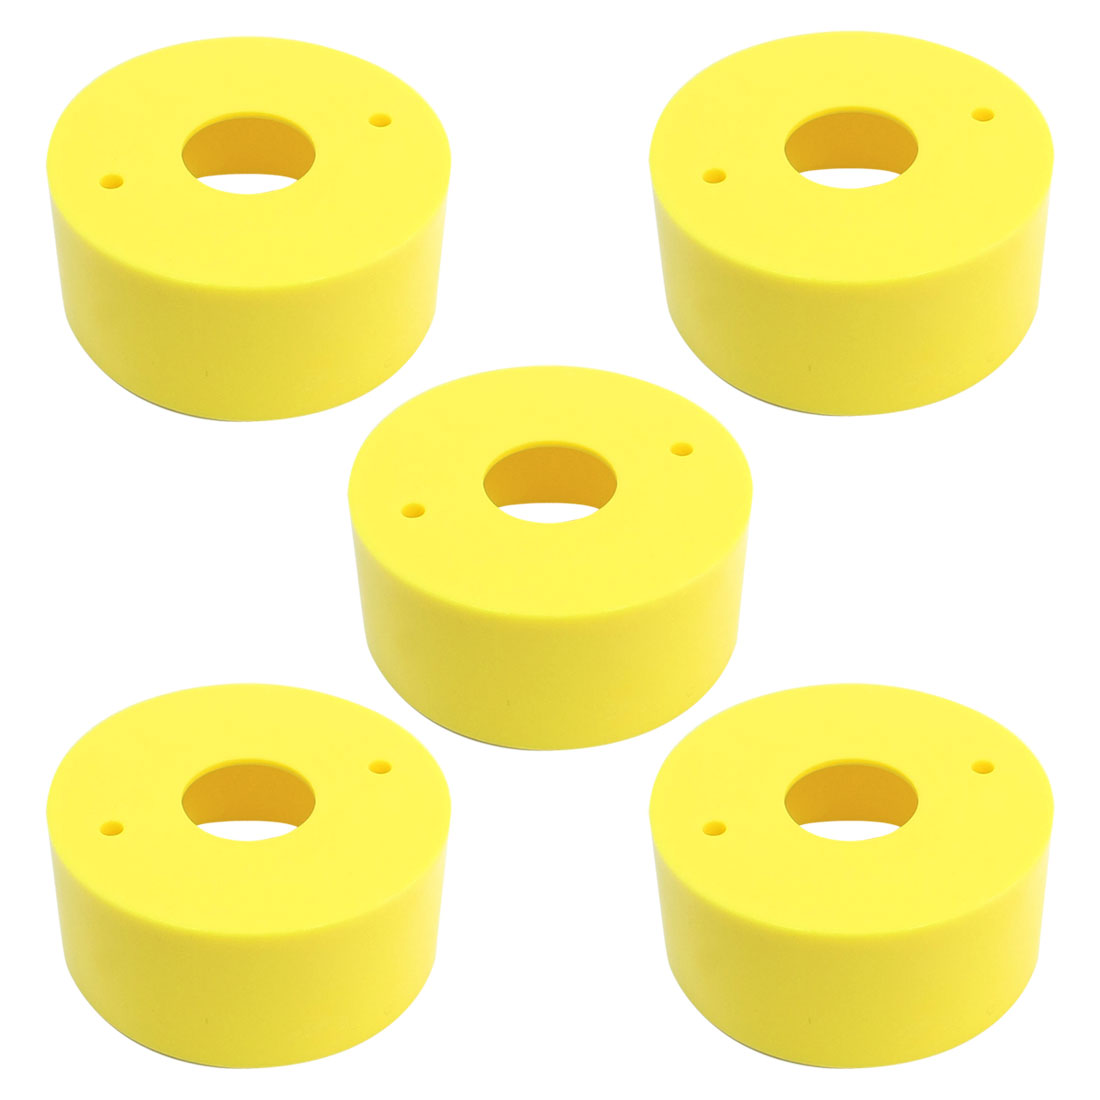 5 Pieces Round 22mm Cutout Push Button Switch Safeguard Cover 67x30mm